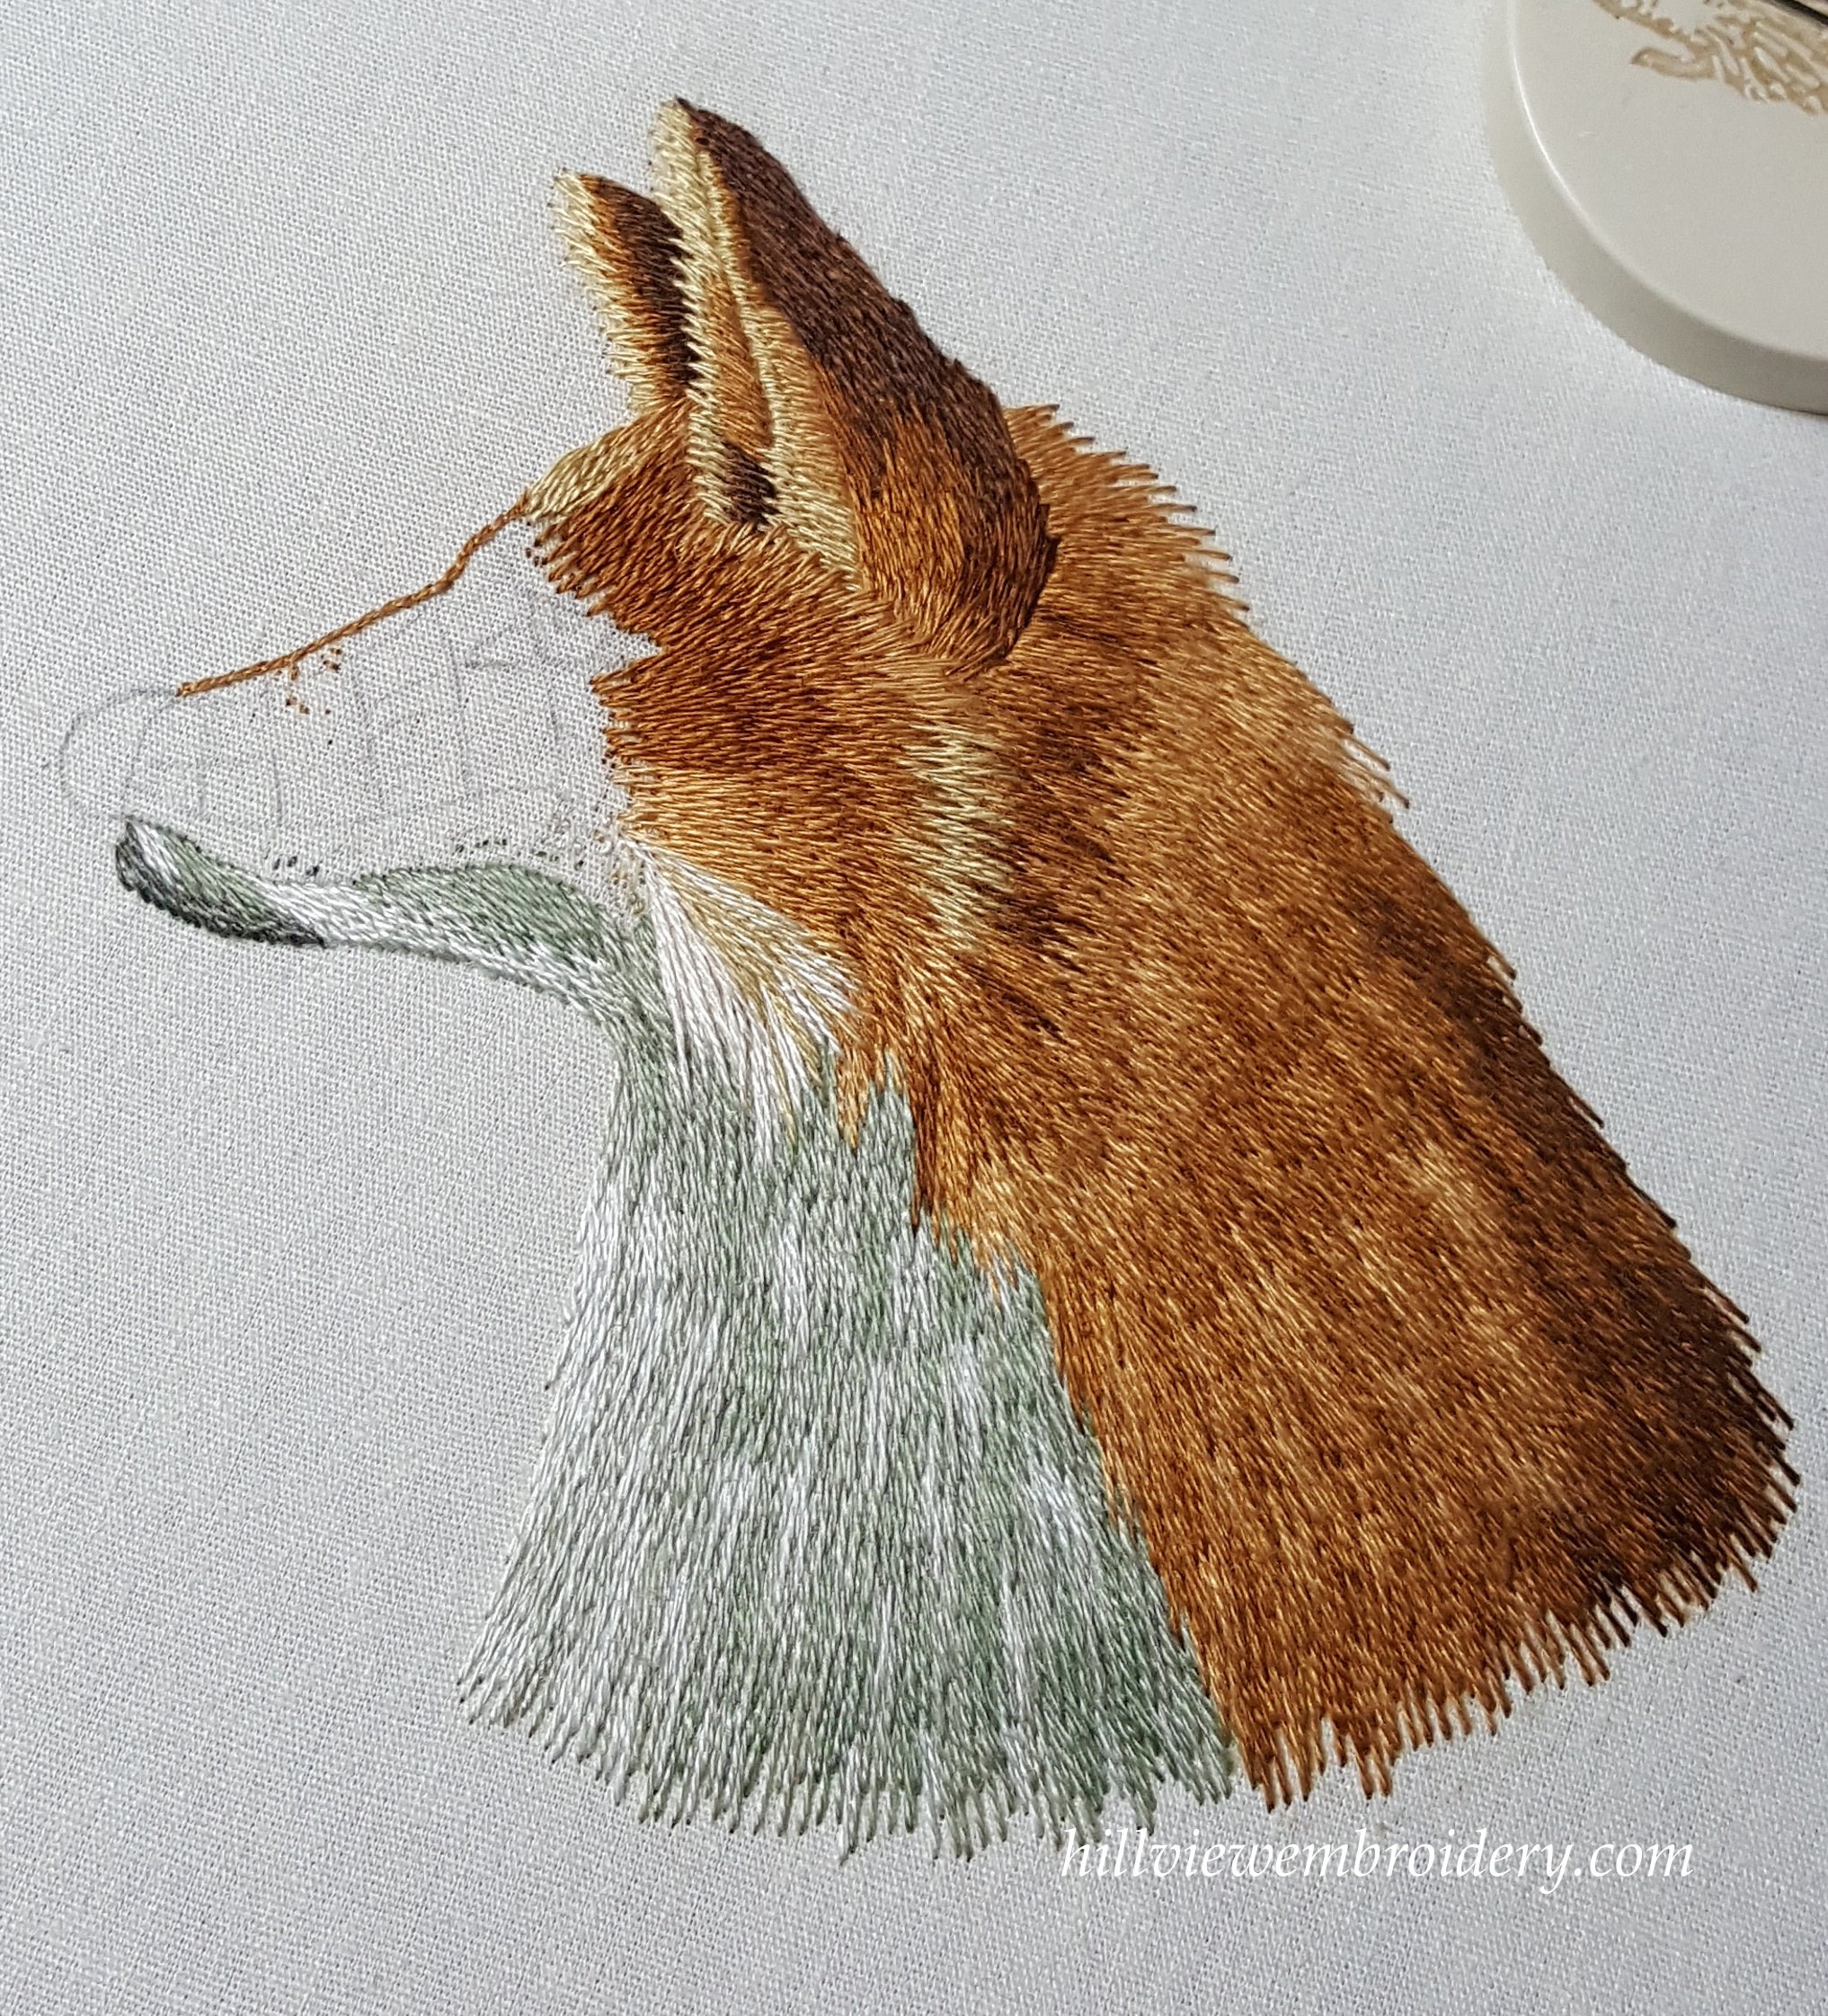 The Red Fox – working his chin